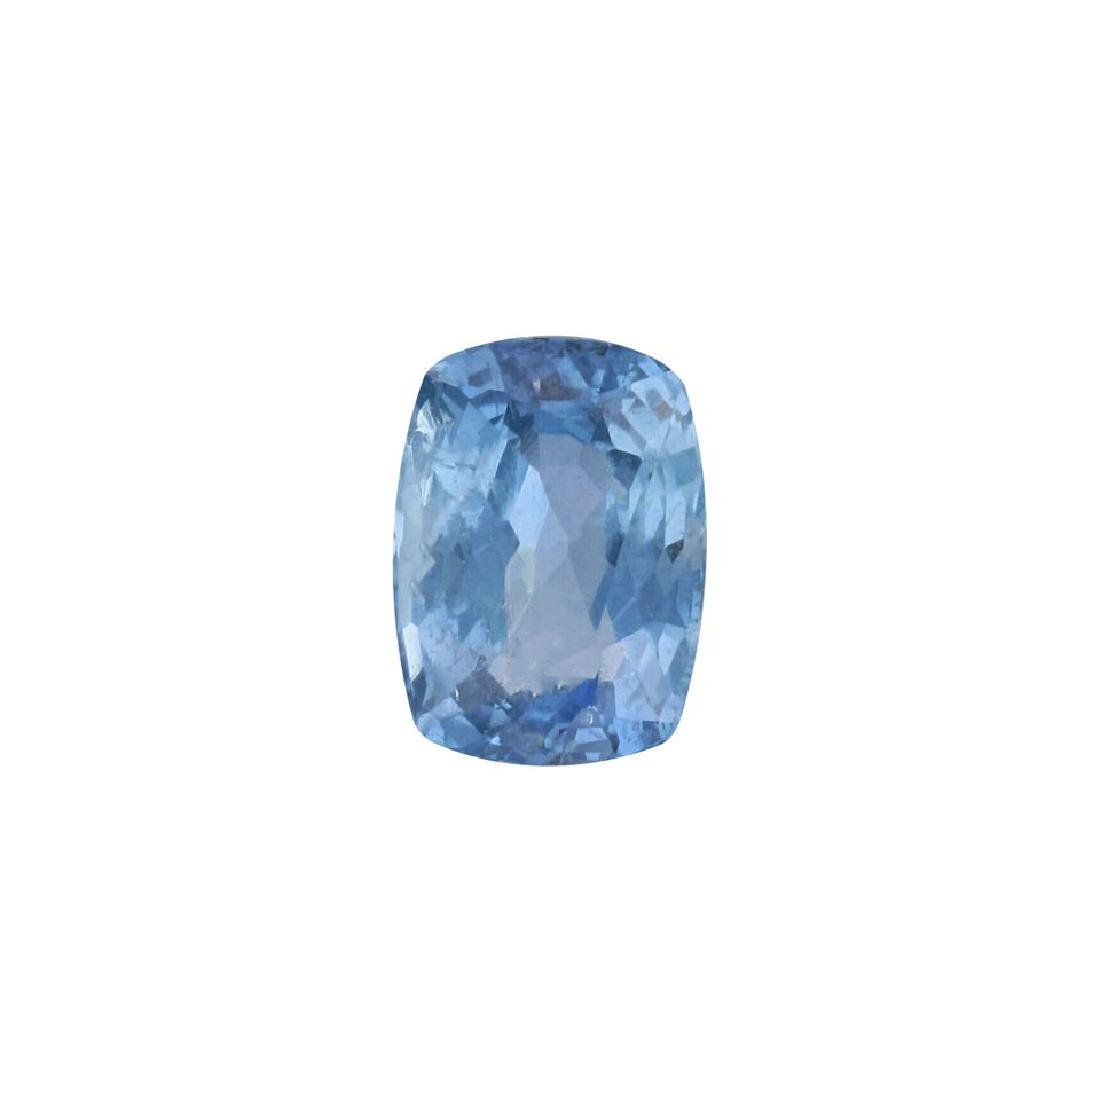 2.76ct UNHEATED Blue Sapphire Loose (GIA CERTIFIED)